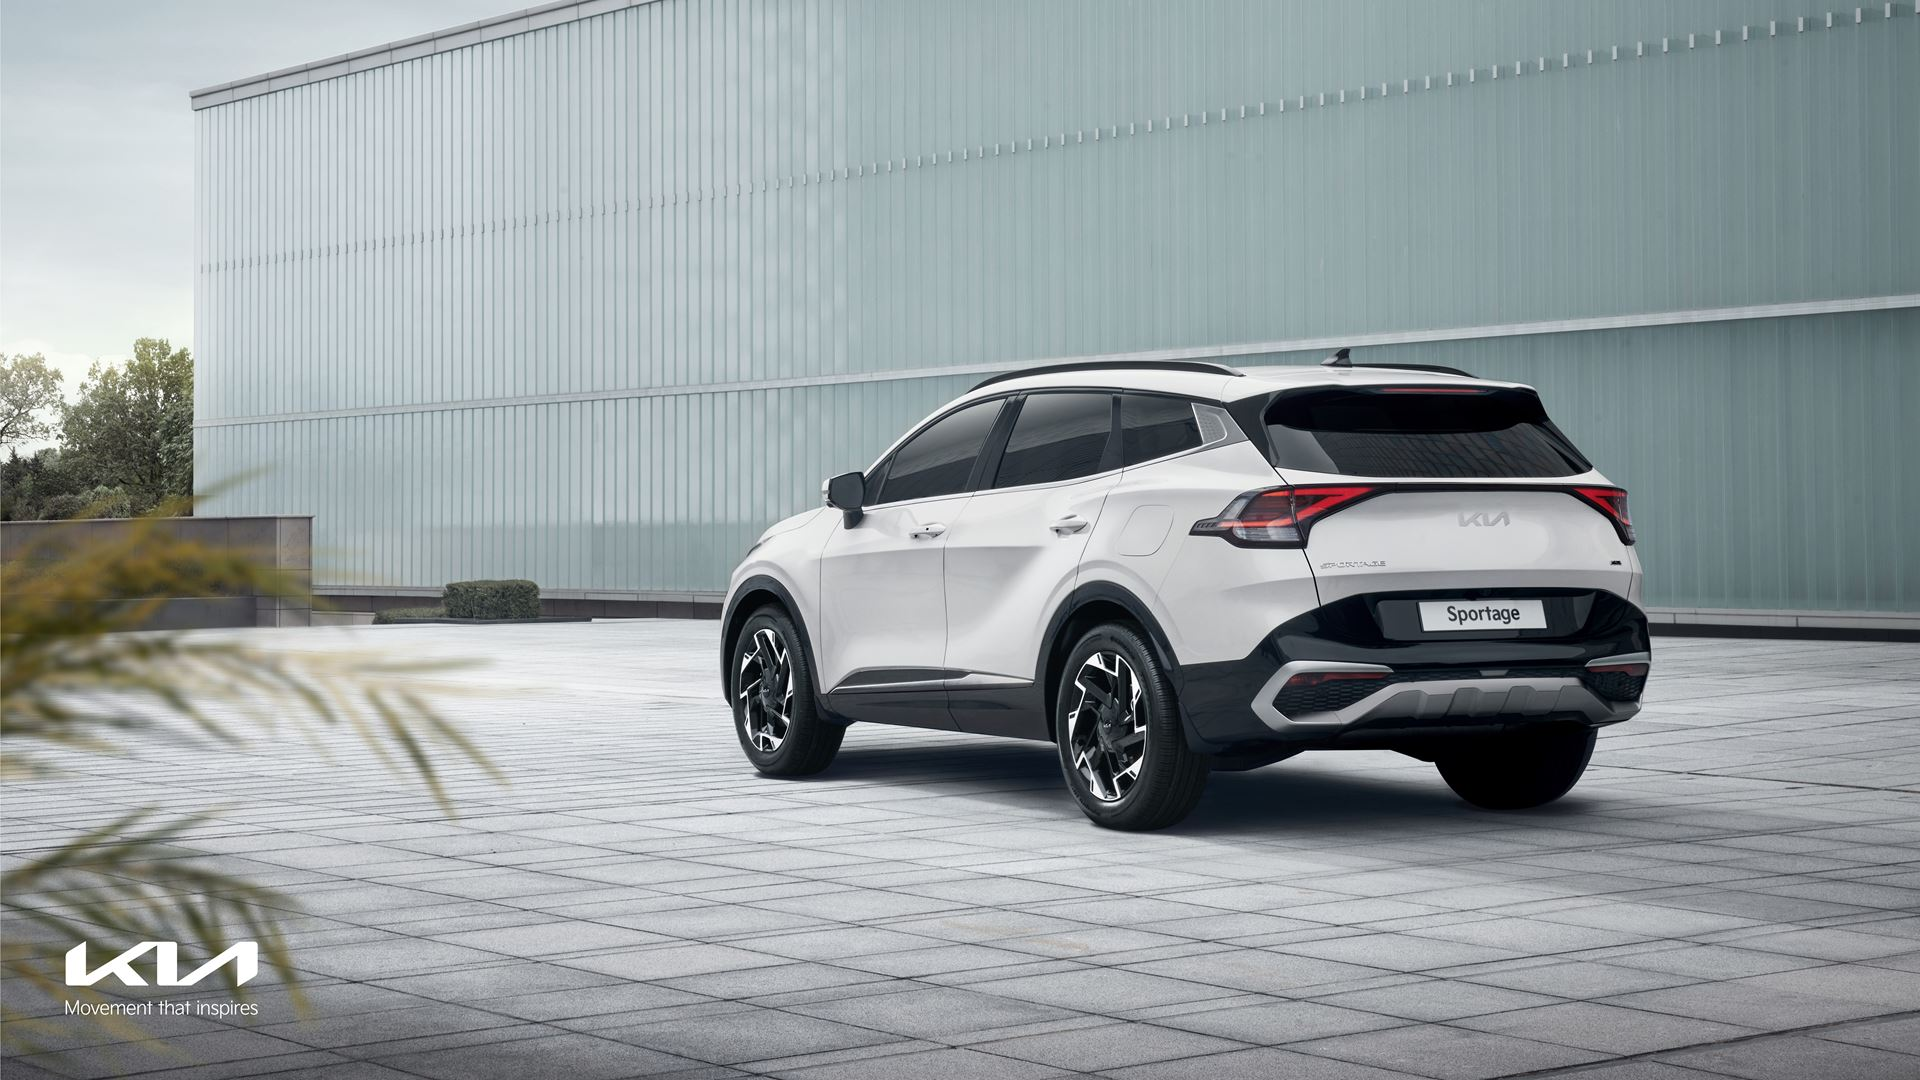 The all-new Kia Sportage sets new standards with inspiring SUV design - Image 5